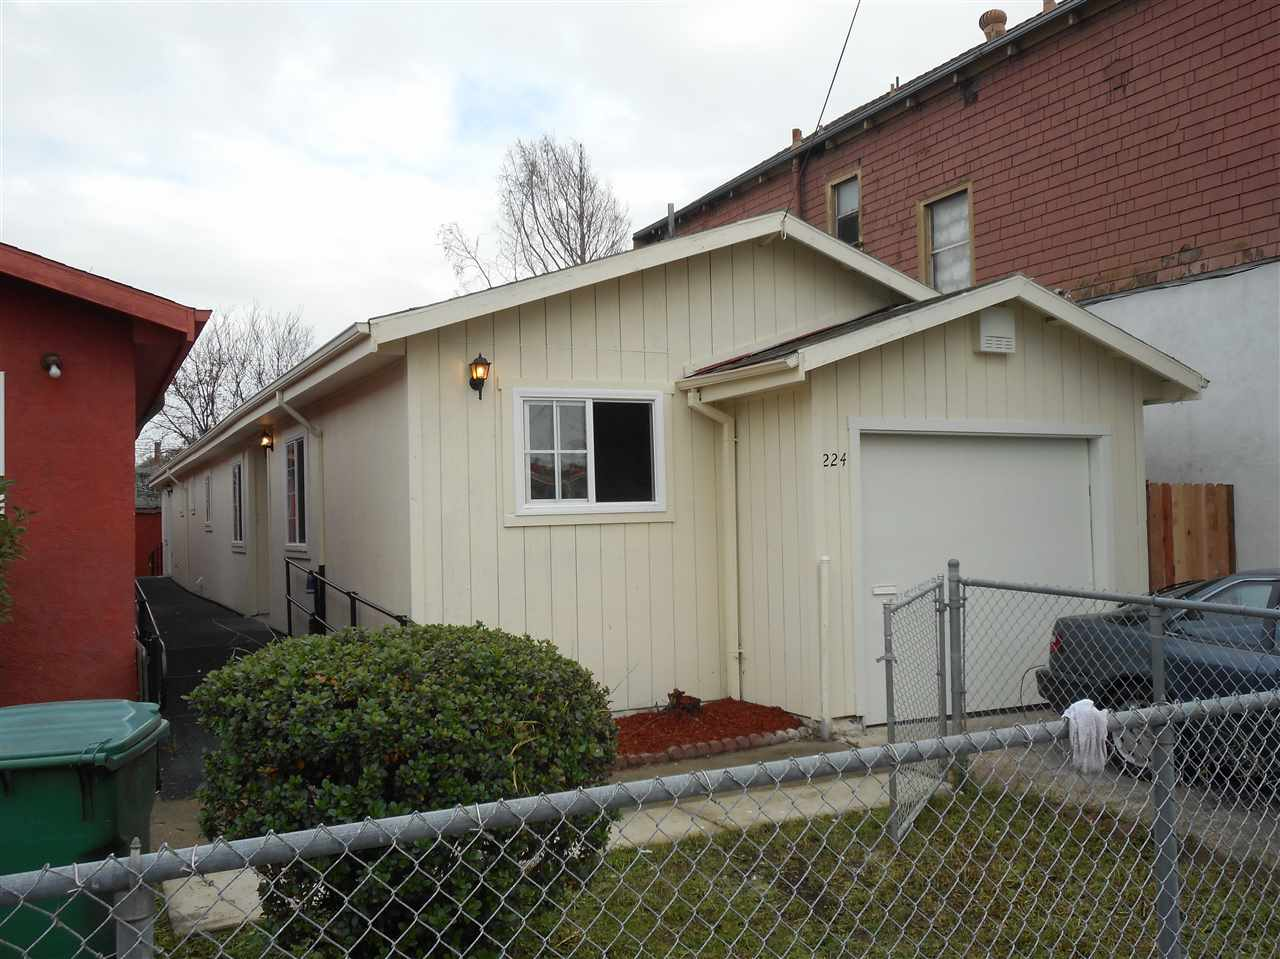 224 3RD ST, RICHMOND, CA 94801